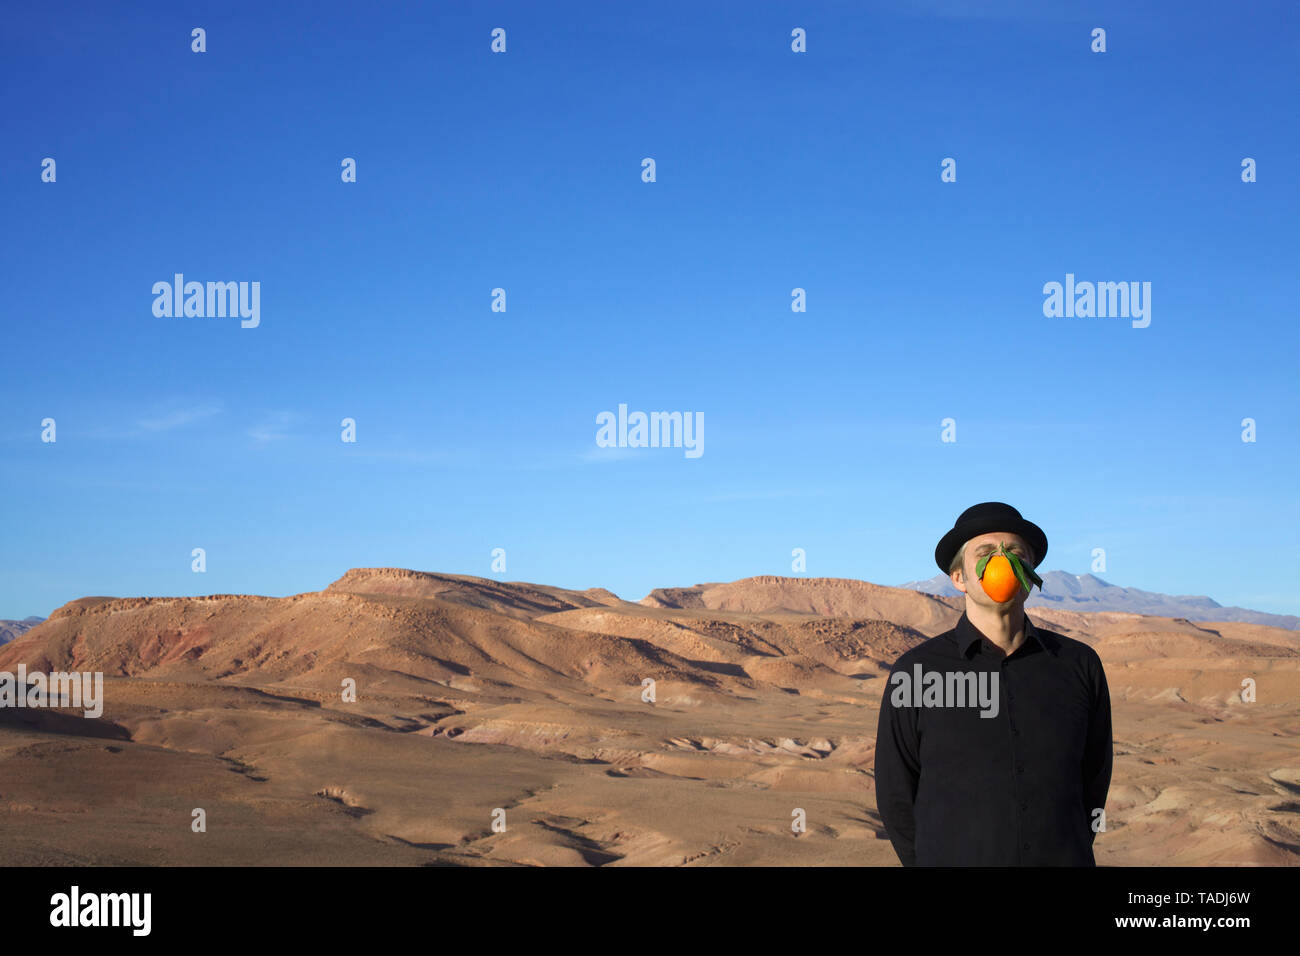 Morocco, Ounila Valley, man wearing a bowler hat with an orange in front of his face - Stock Image